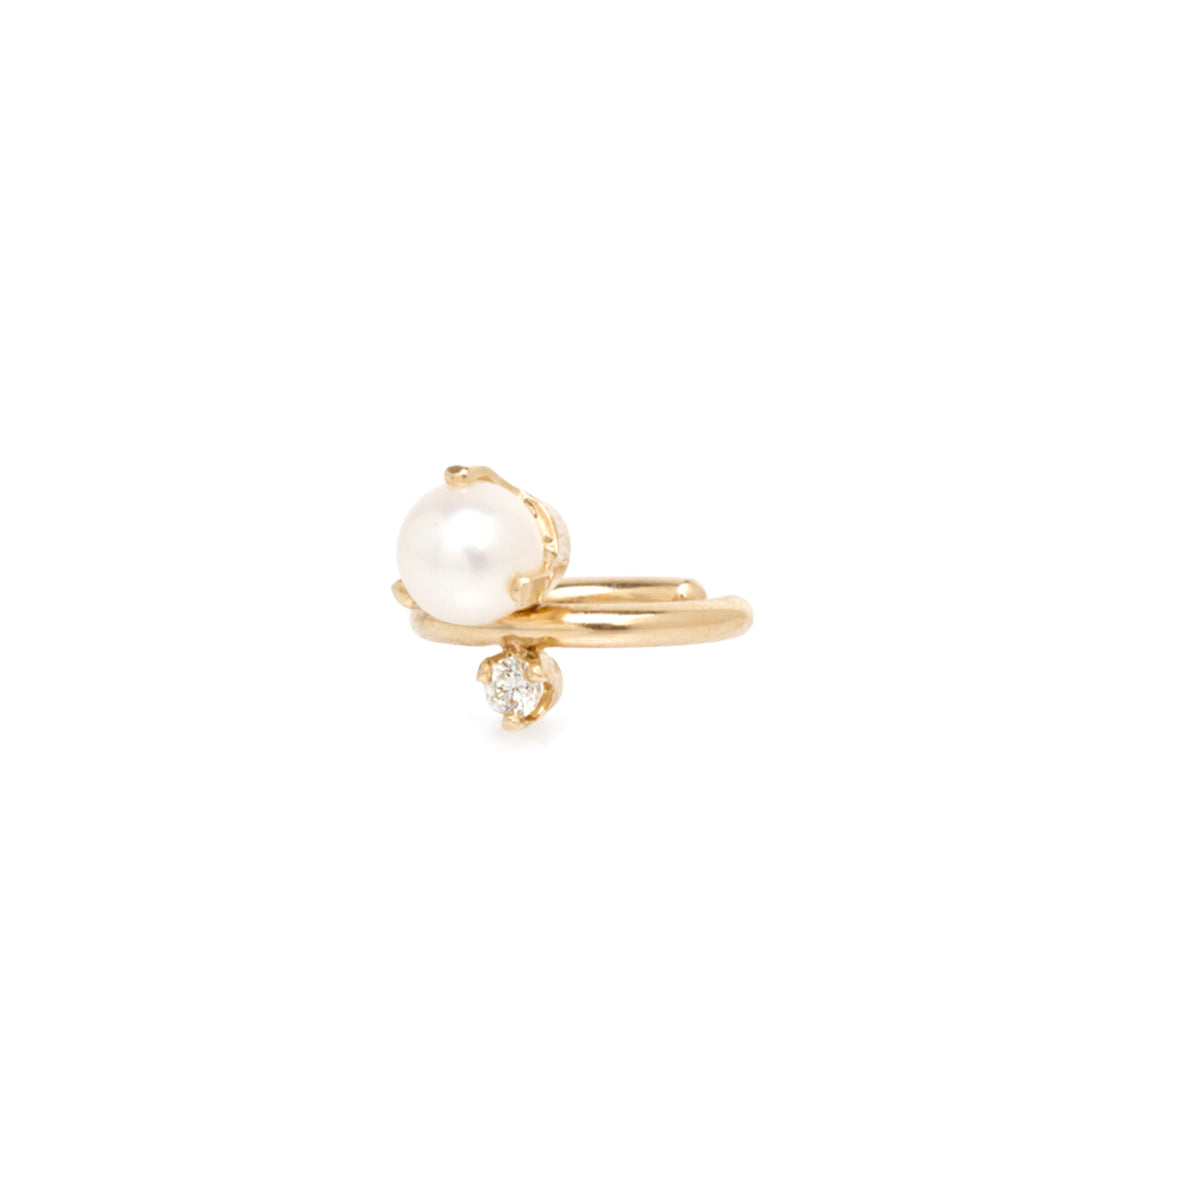 14k diamond prong ear cuff with pearl